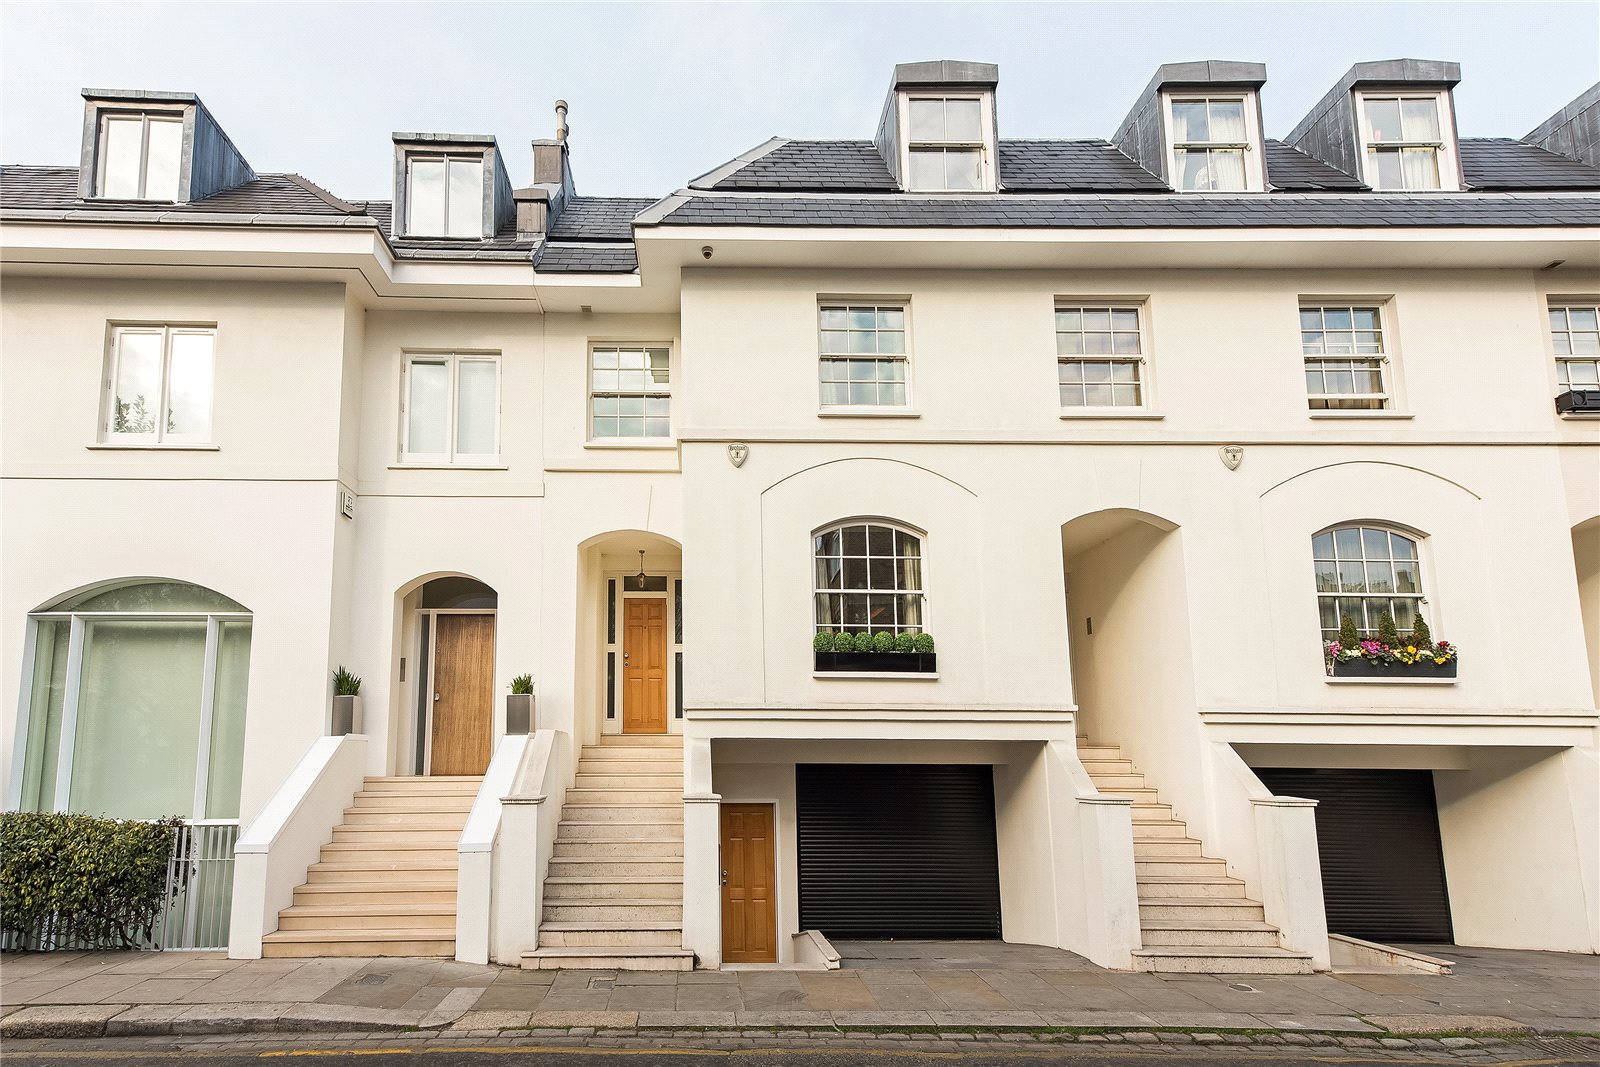 Maison unifamiliale pour l Vente à Clareville Street, South Kensington, London, SW7 South Kensington, London, Angleterre